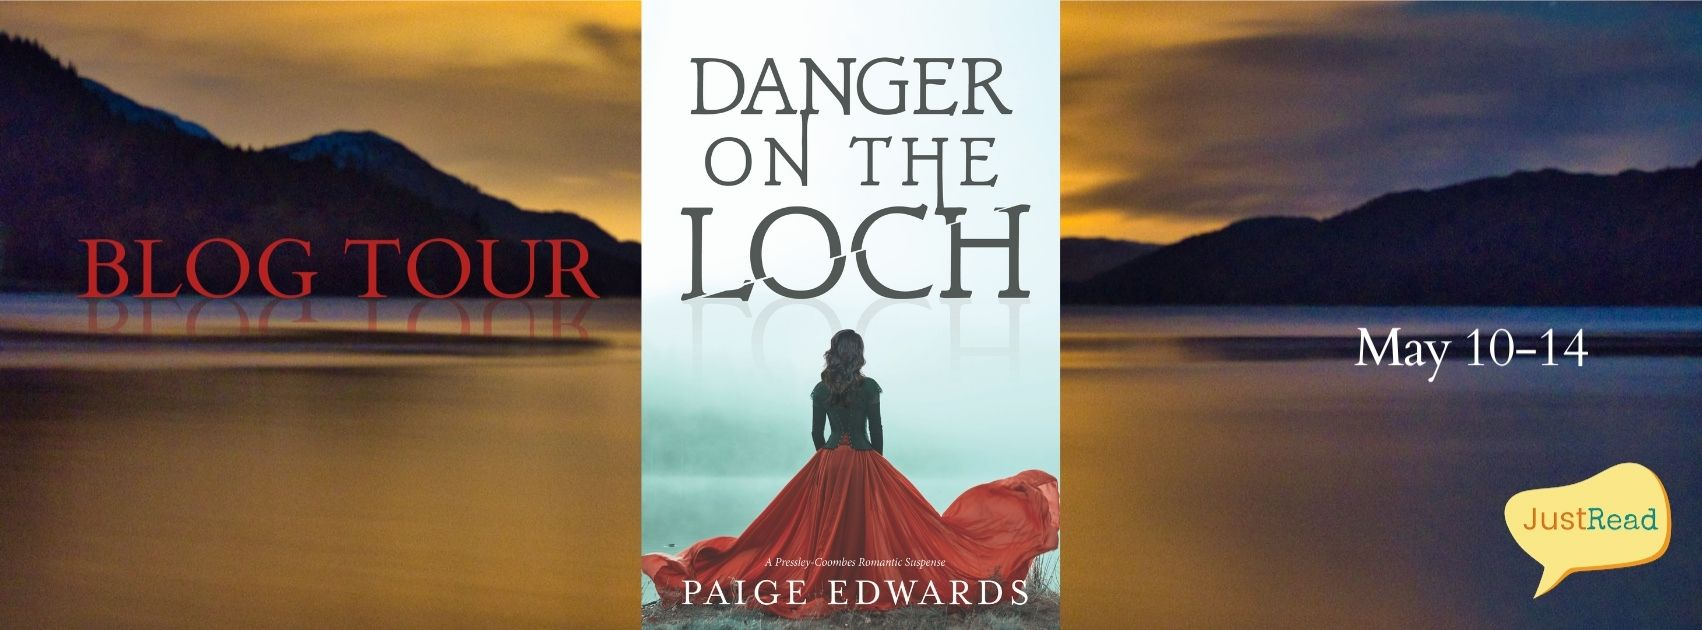 Danger on the Loch JustRead Blog Tour